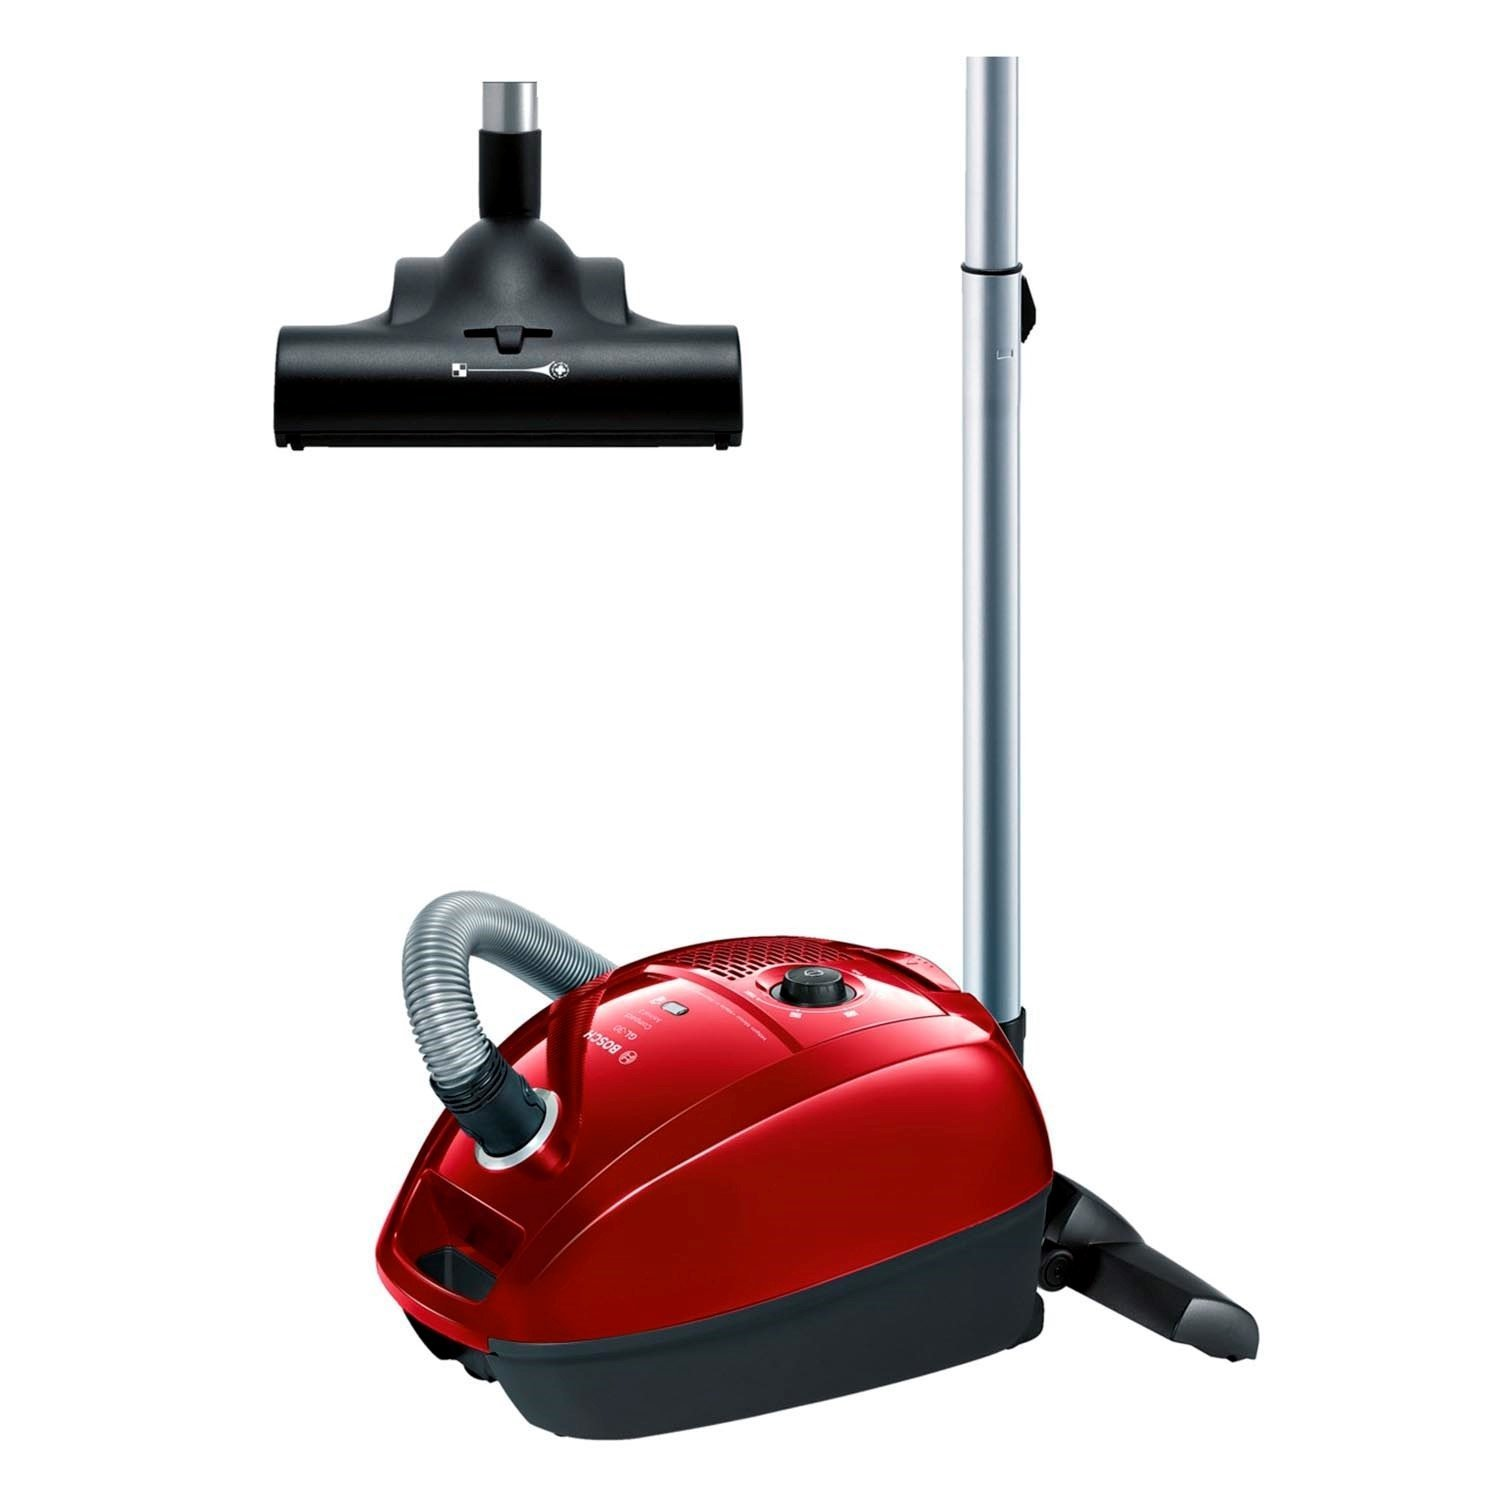 Bosch Pet Cylinder Bagged Compact Vacuum Cleaner 1200w